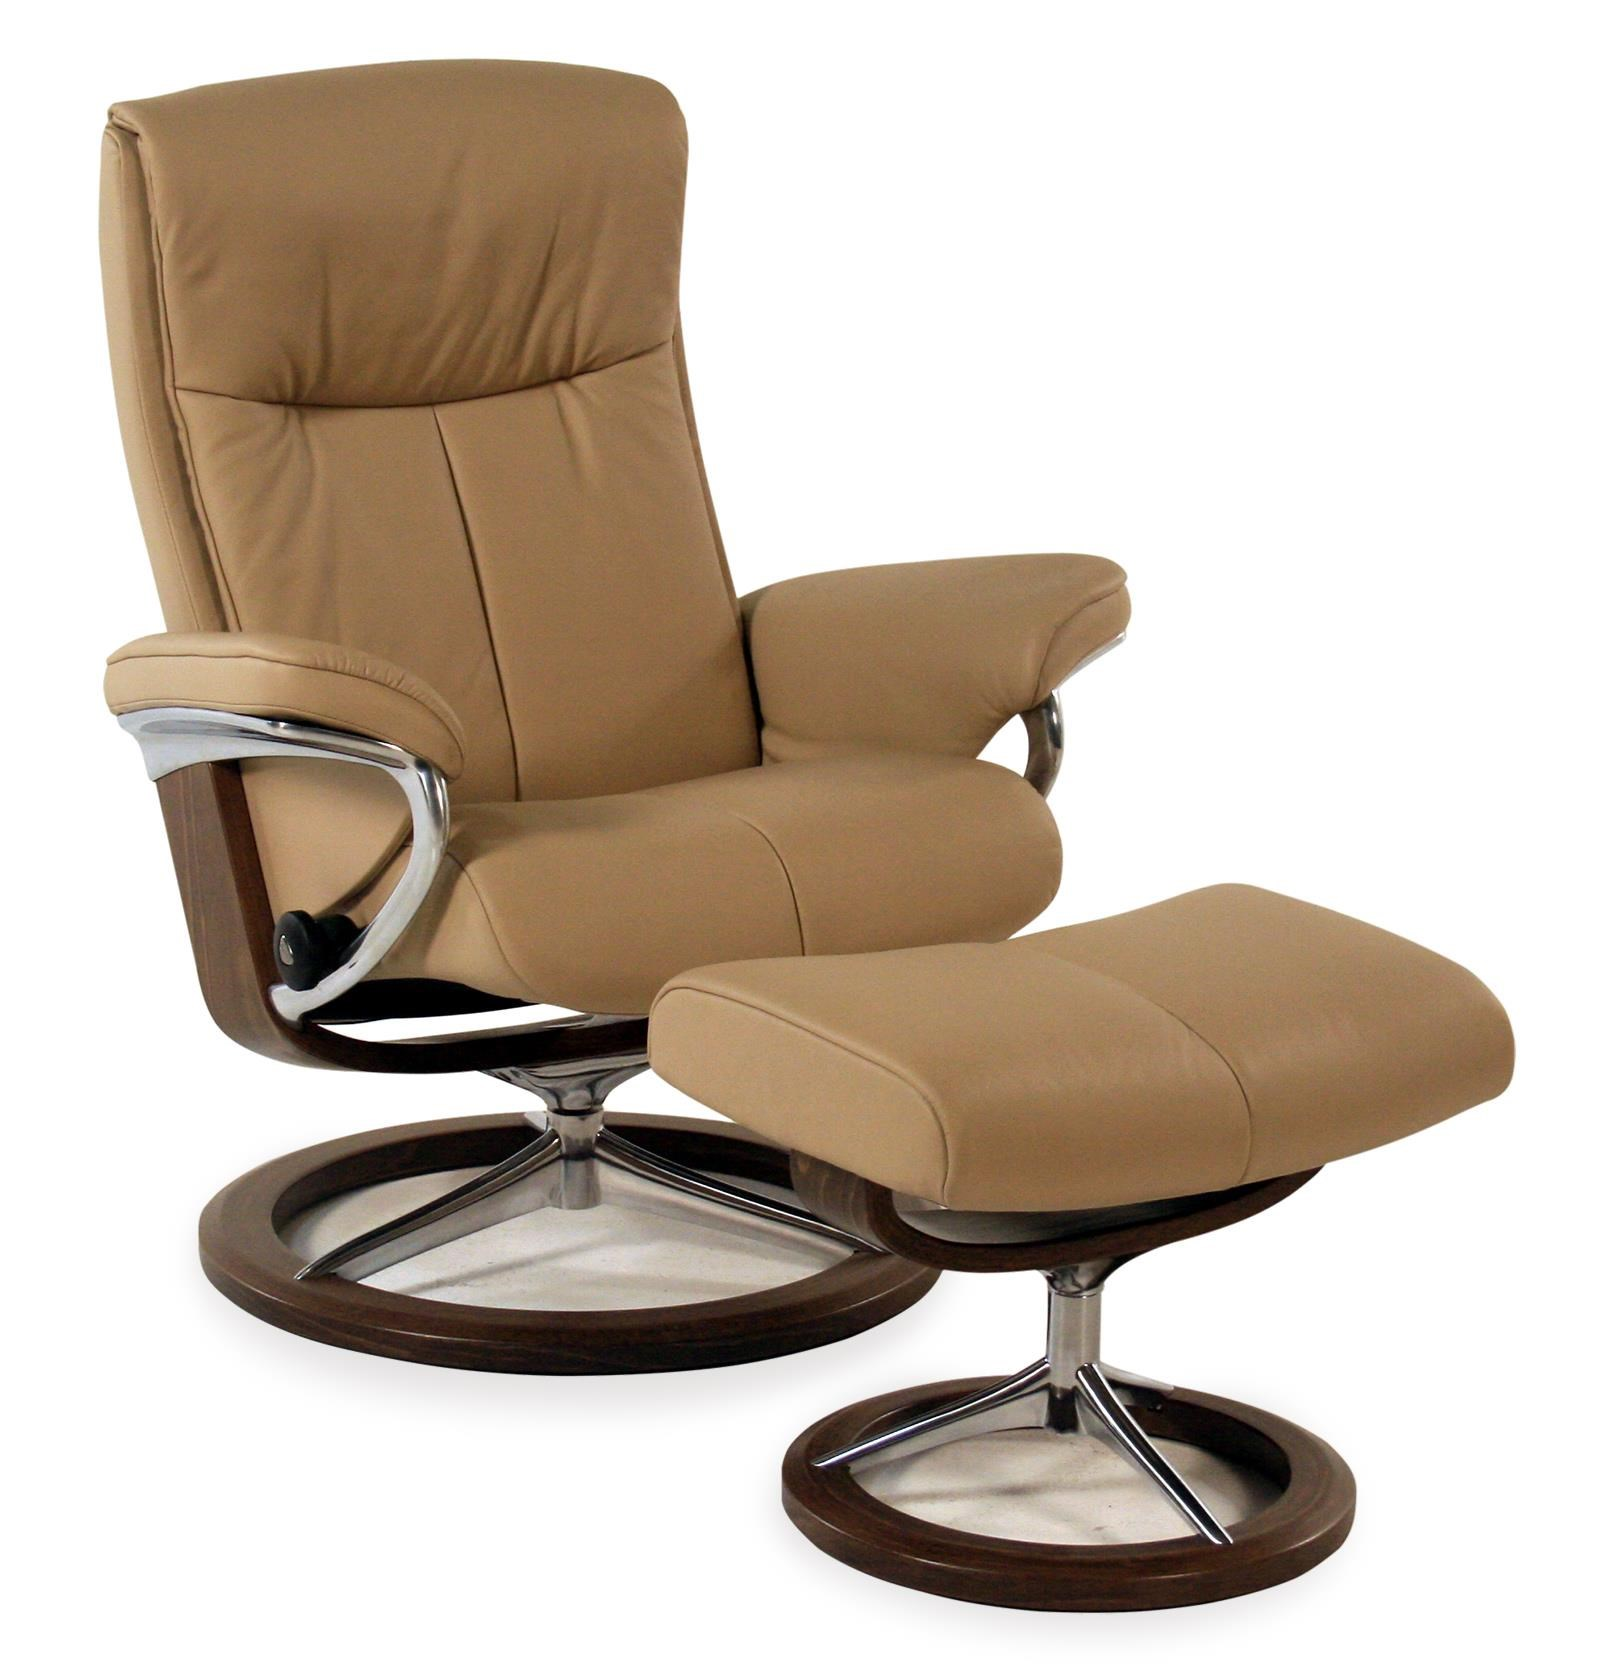 Stressless Chair Prices Stressless By Ekornes Peace Medium Signature Reclining